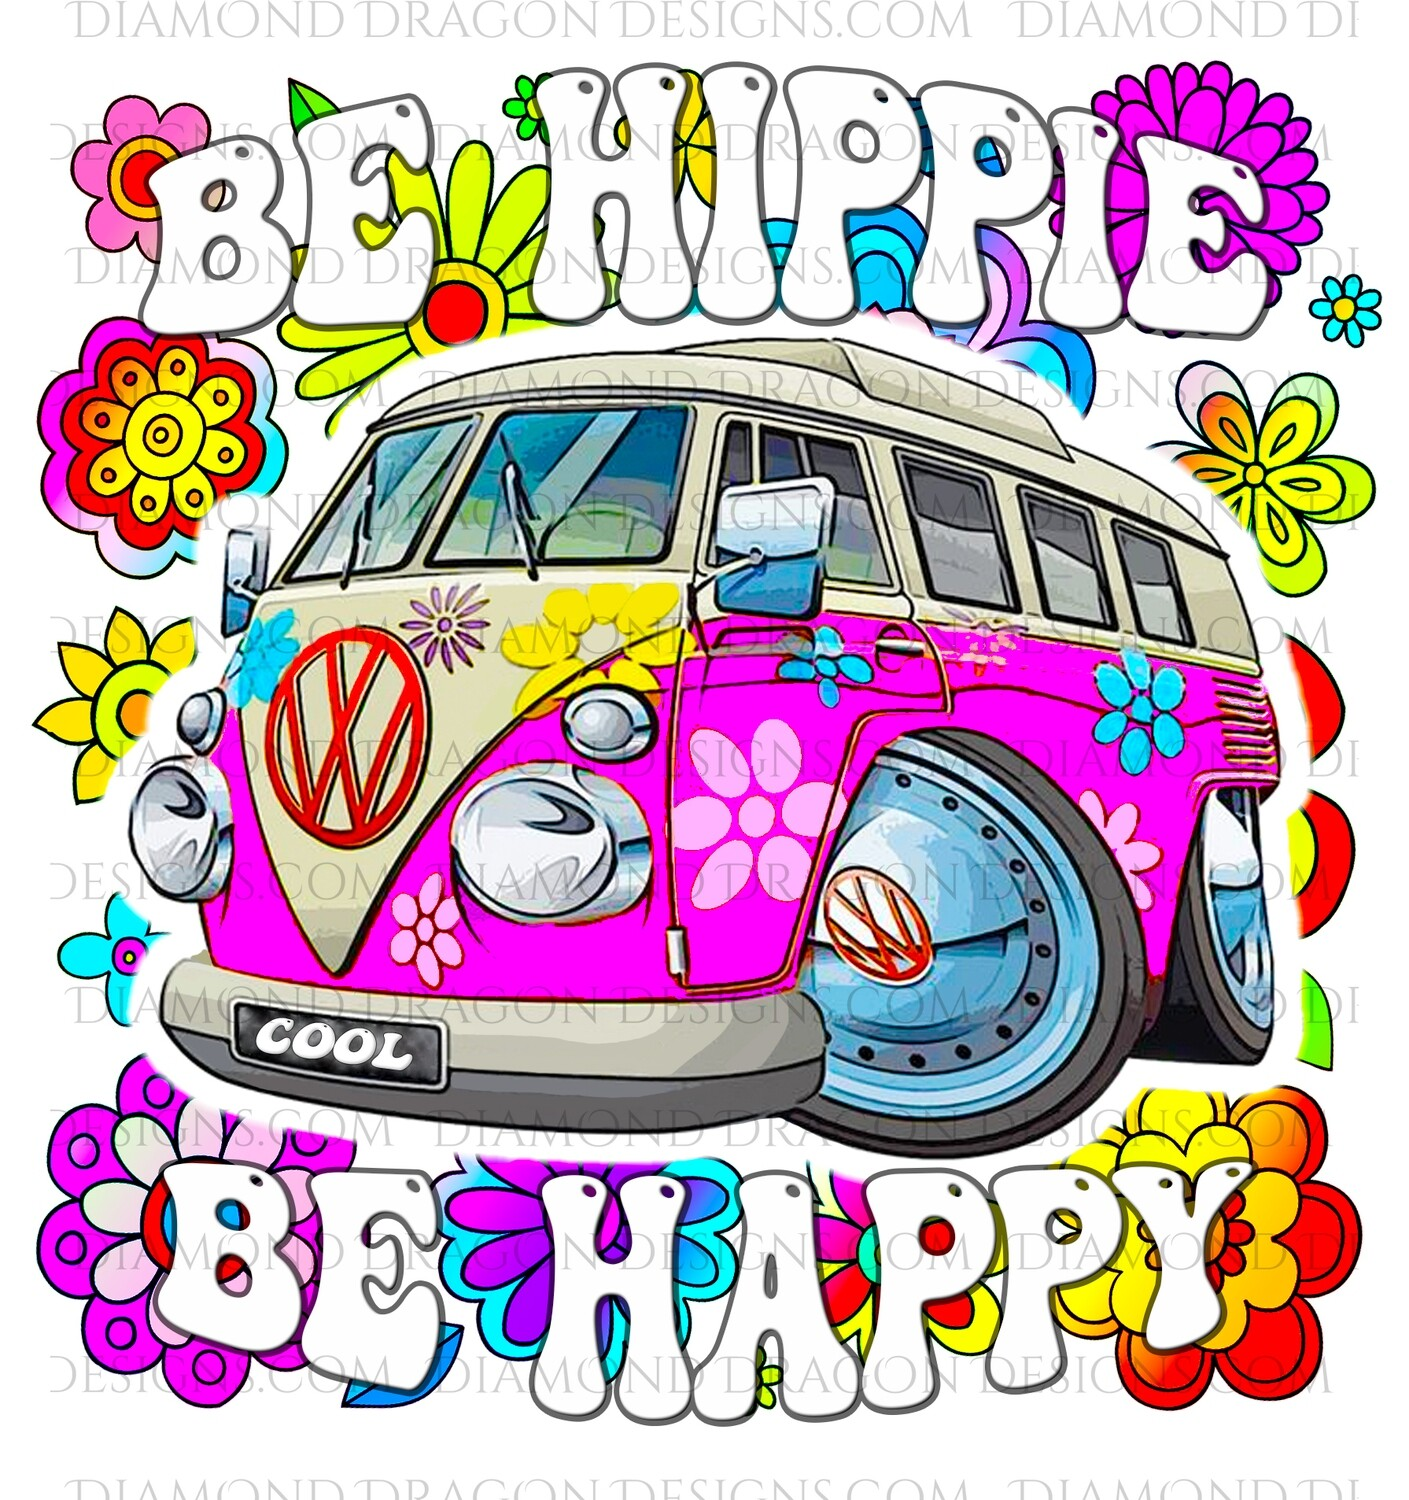 Quotes - Be Hippie, Be Happy, 70s, VW Bus, Retro Pink, Waterslide